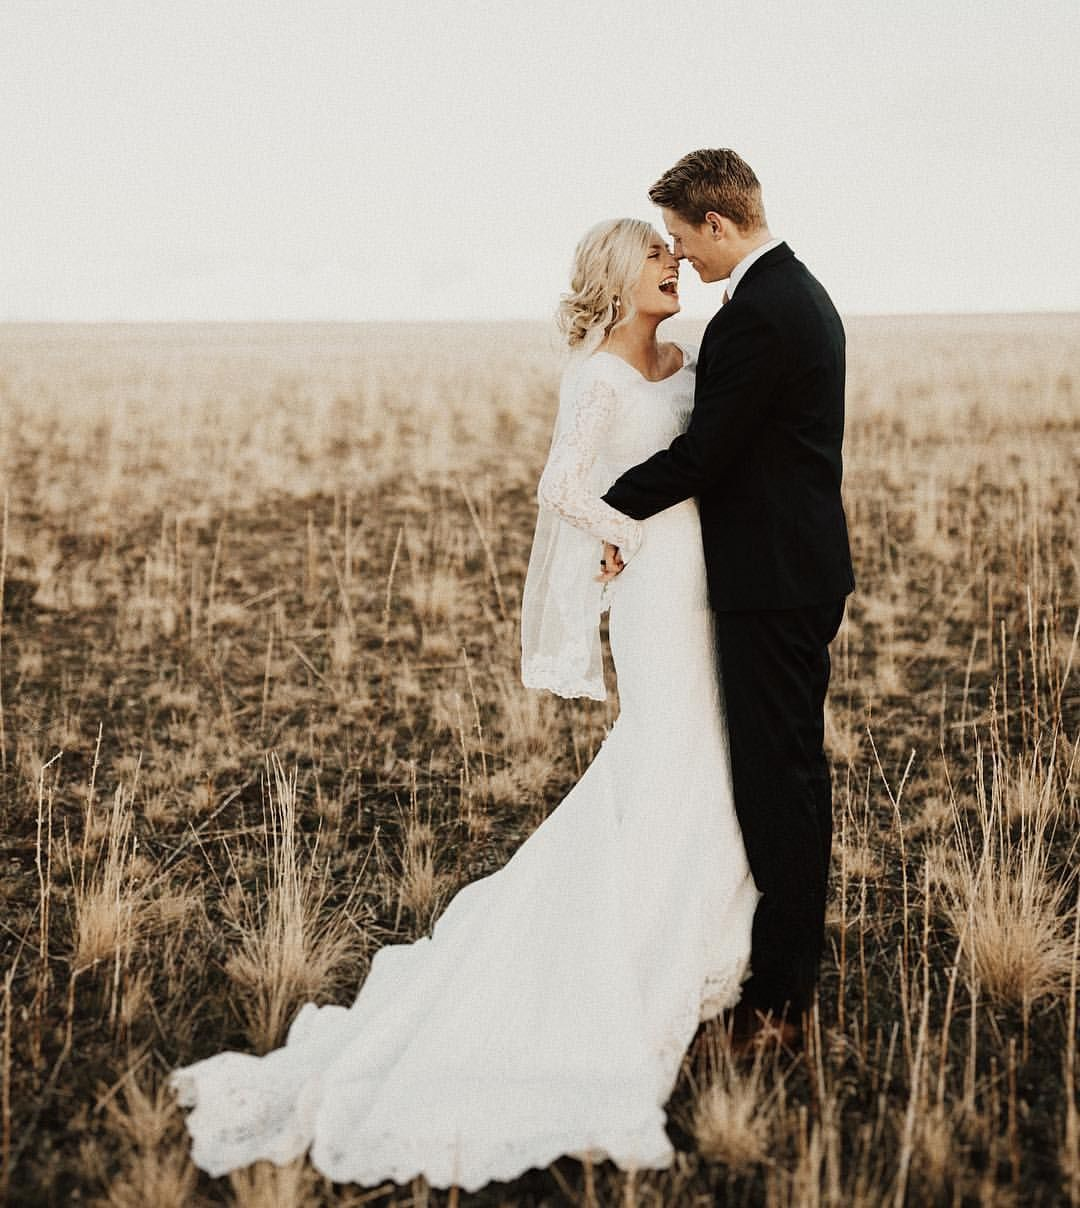 Nature wedding dress  Pin by Bailee Willits on W E D D I N G  Pinterest  Simple wedding